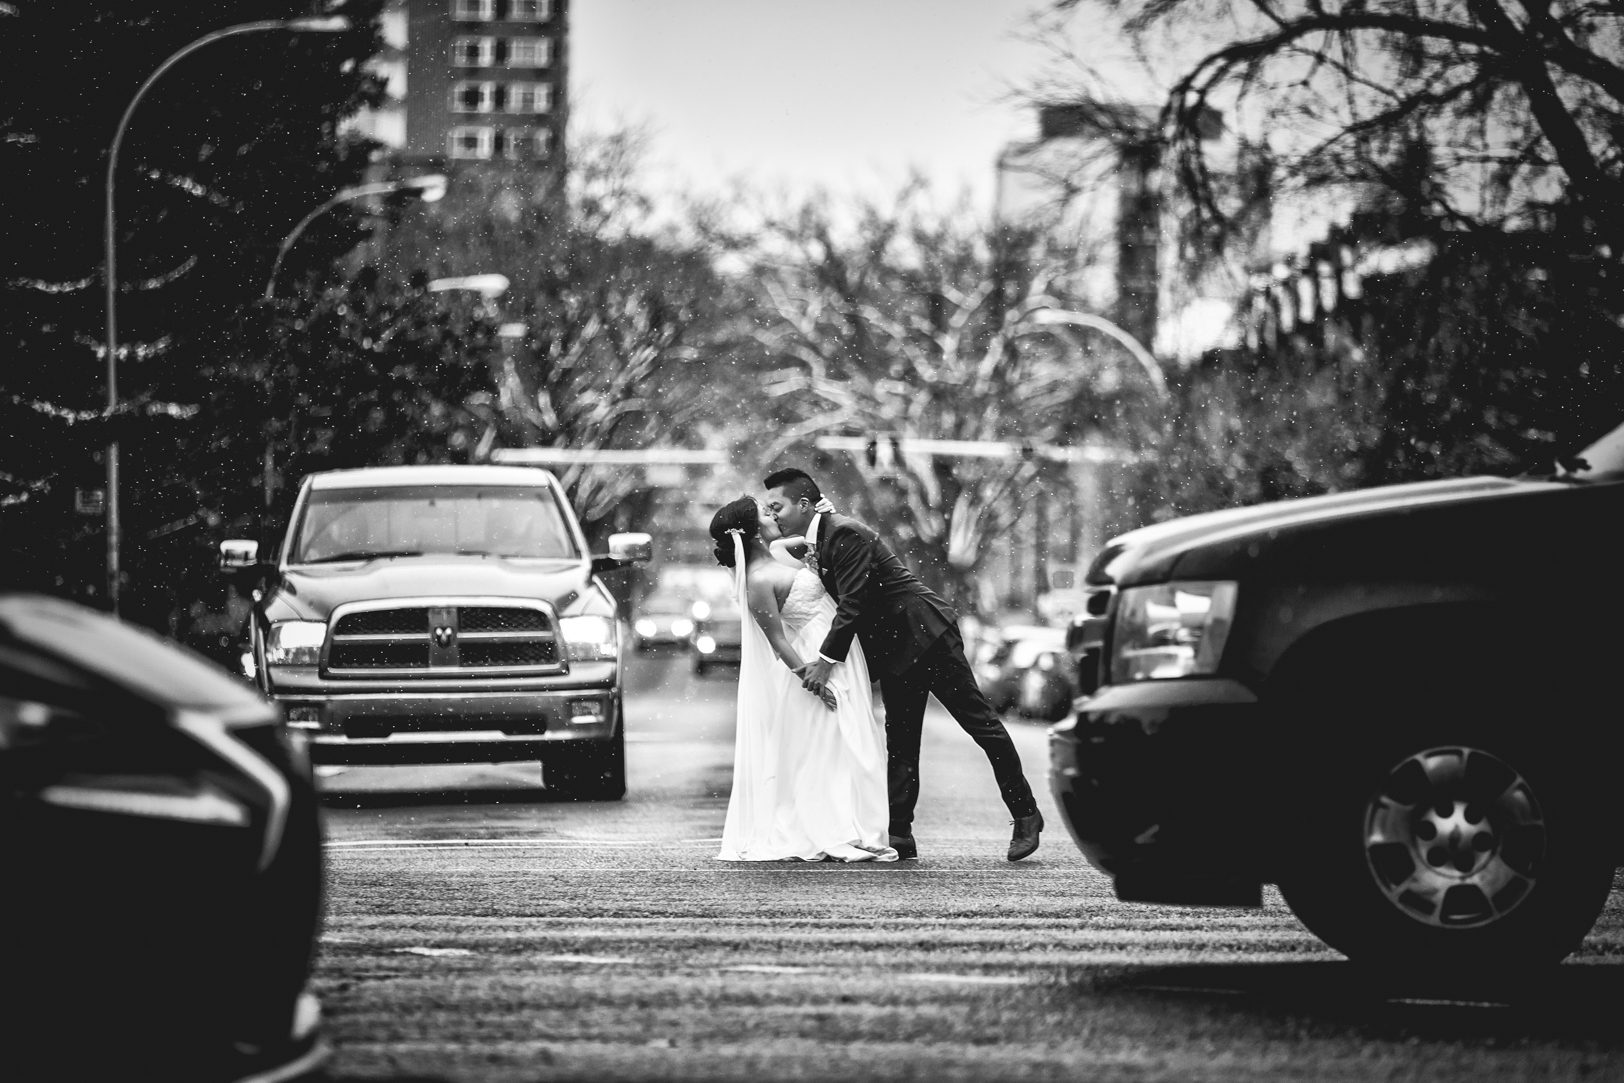 university of alberta winter wedding